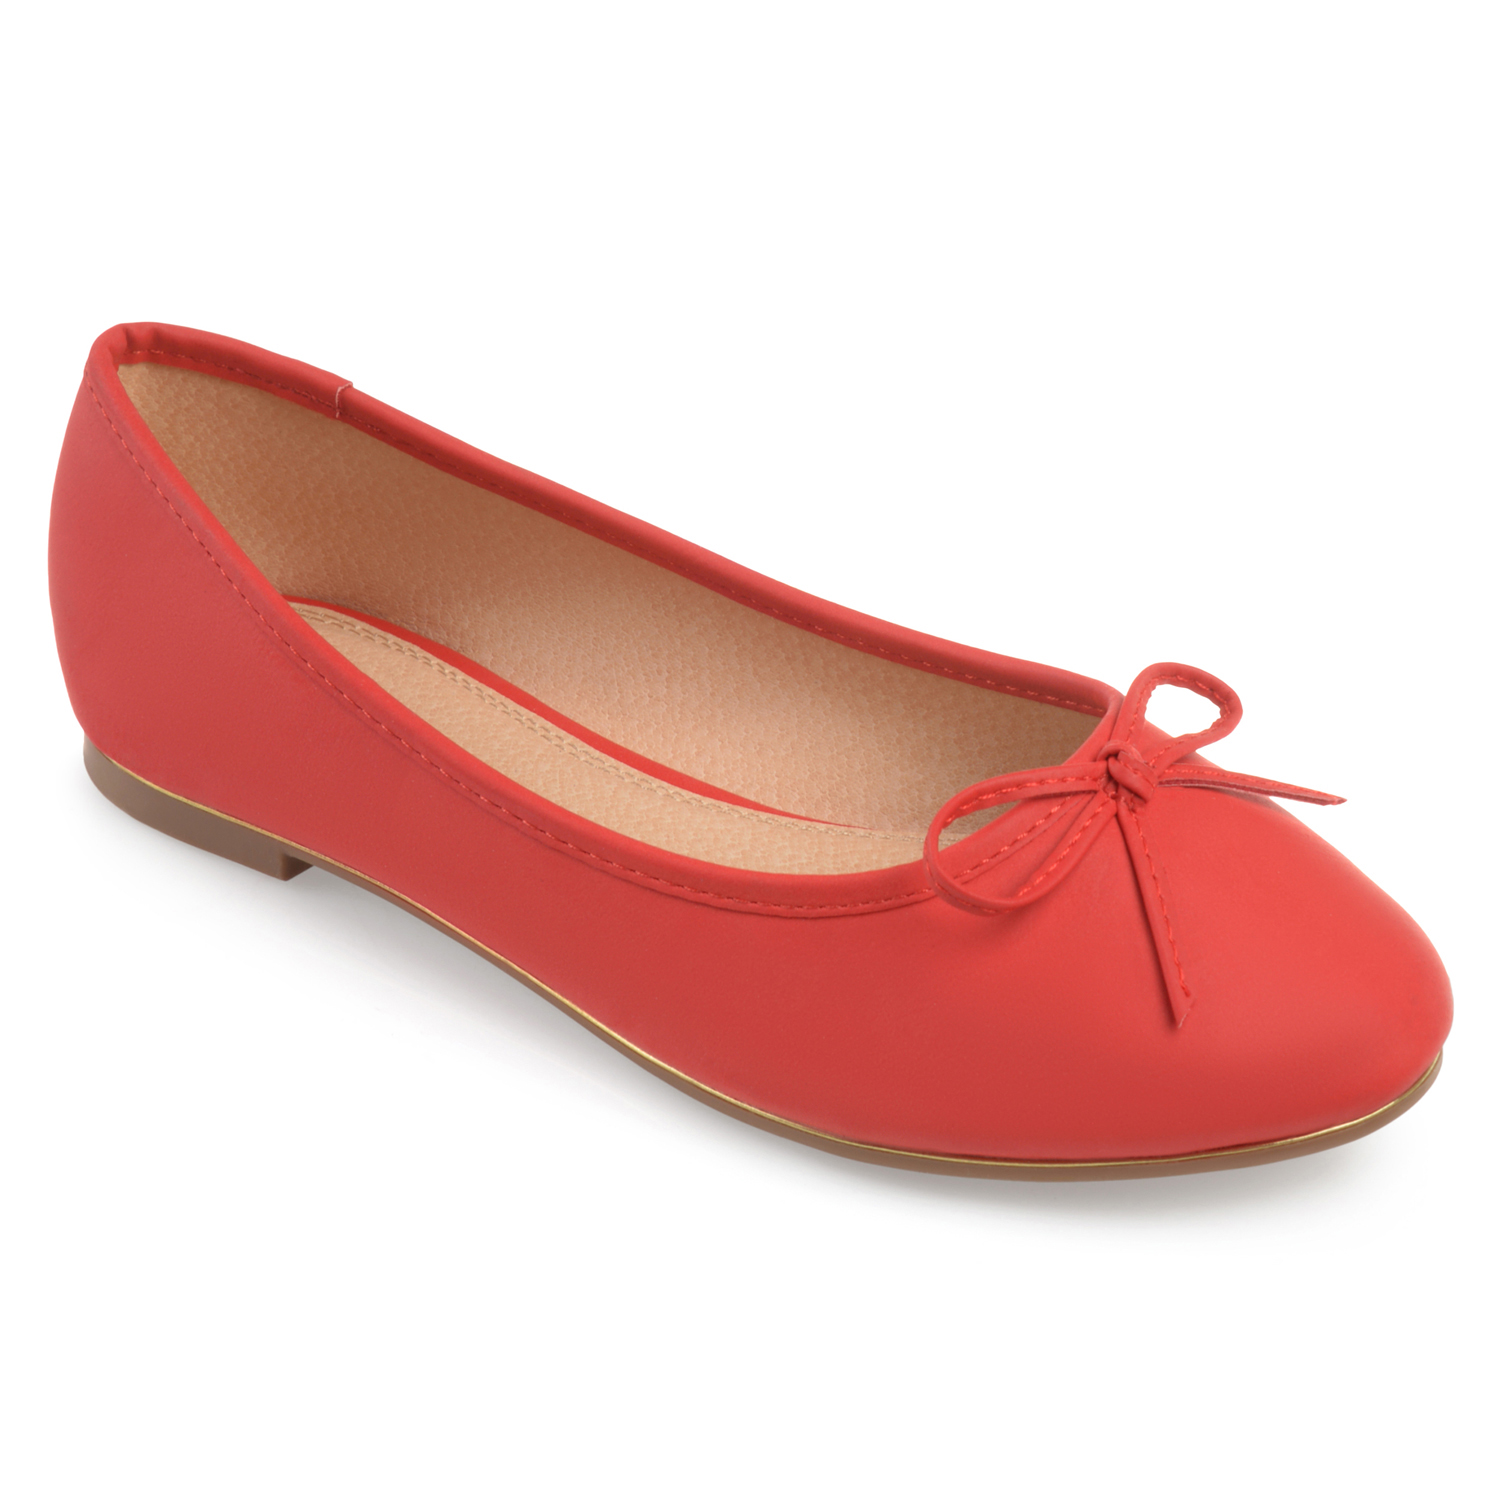 Brinley Co. Women's Bow Detail Wide Width Ballet Flats by Brinley Co.